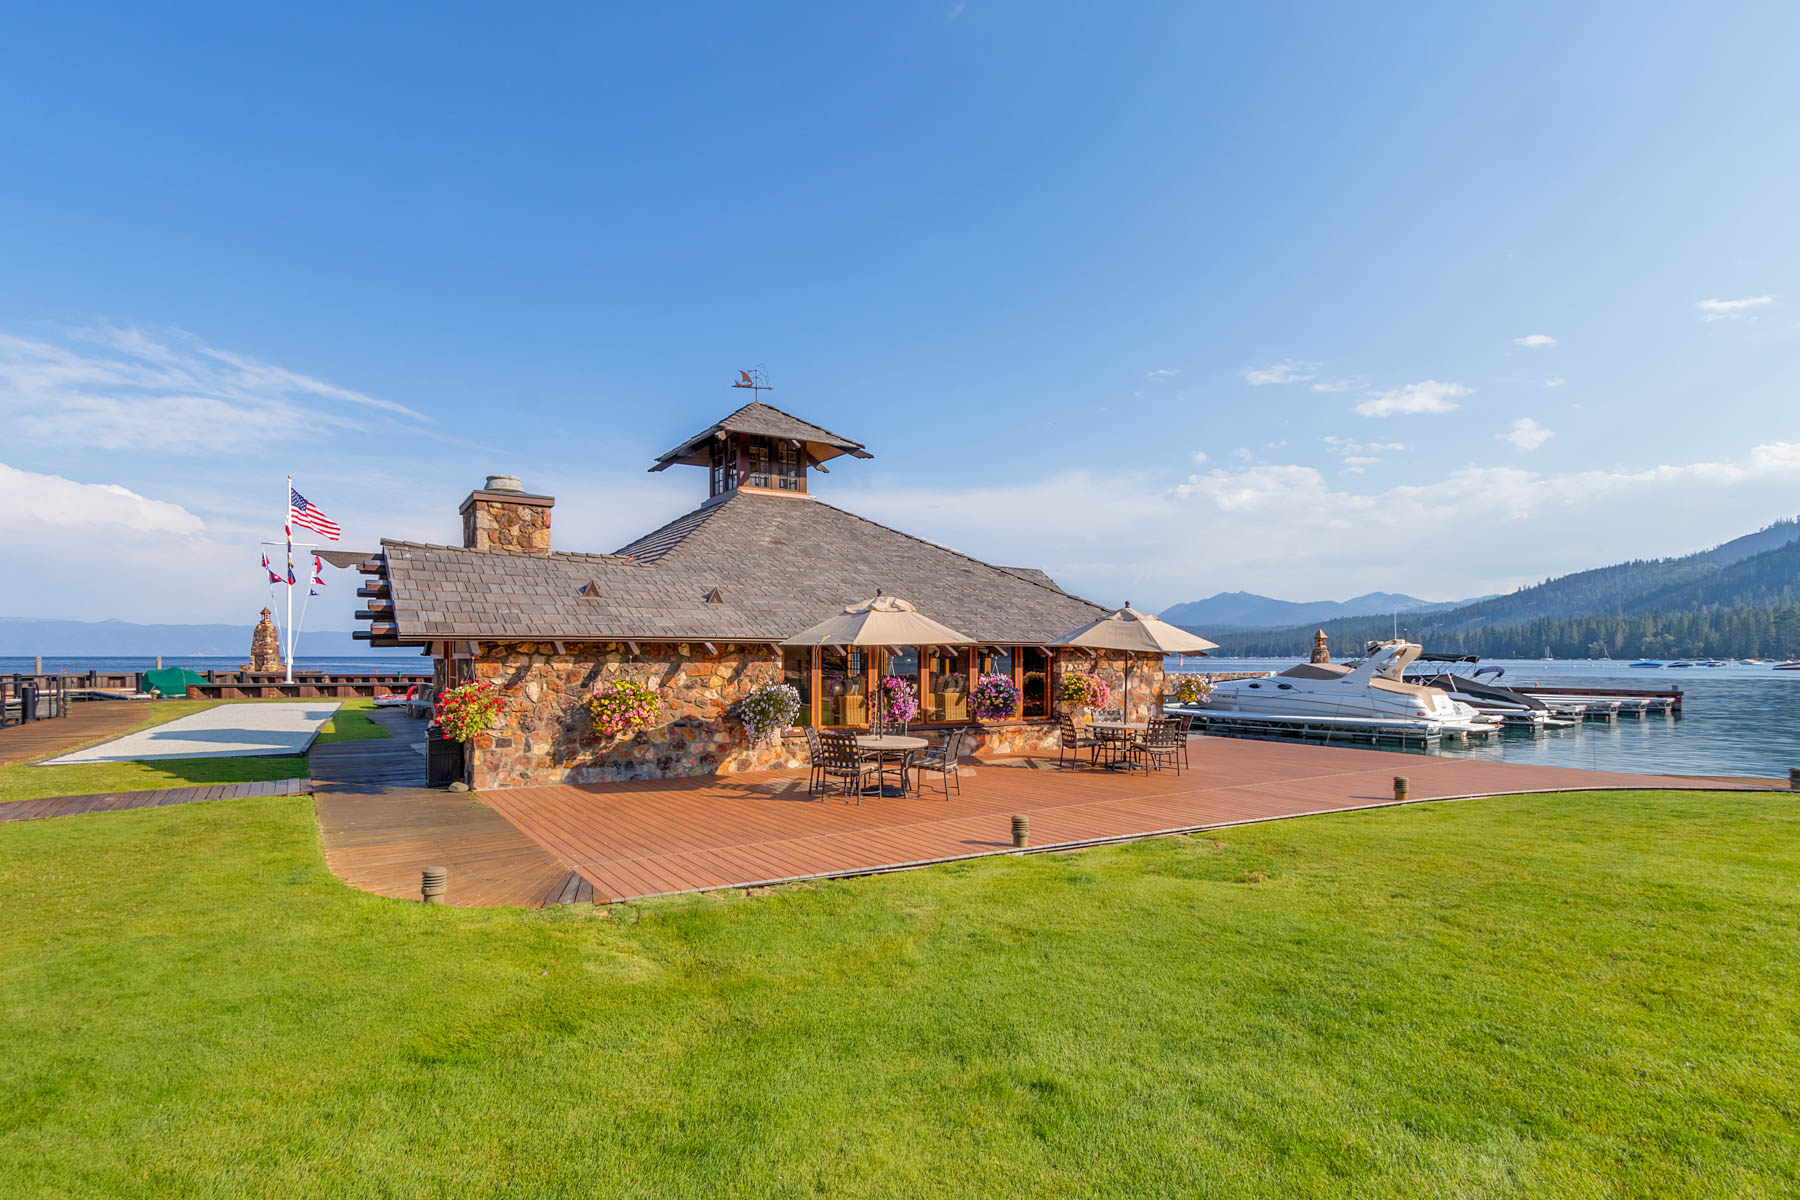 Additional photo for property listing at Concierge Living at Lake Tahoe 4000 W Lake Blvd. #20 Homewood, California 96141 United States